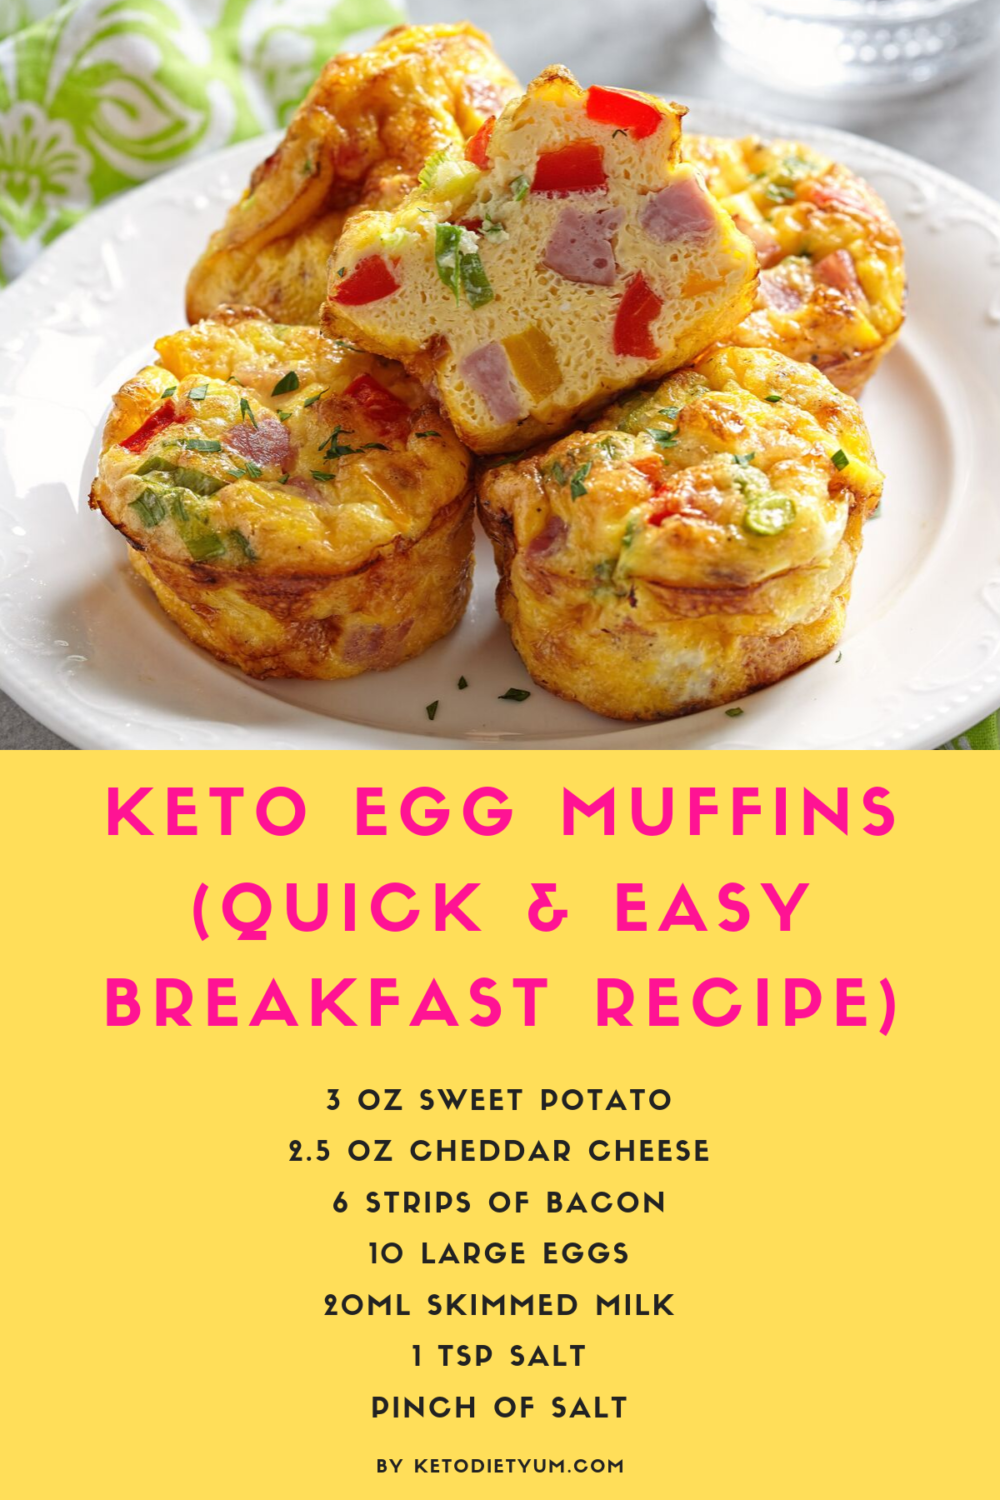 This gluten-free Keto Egg Cup (or Keto Egg Muffin as it's sometimes referred to) recipe is a good example of something that is easy to make and good for all the family to enjoy. #ketodiet #ketorecipes #lowcarbrecipes